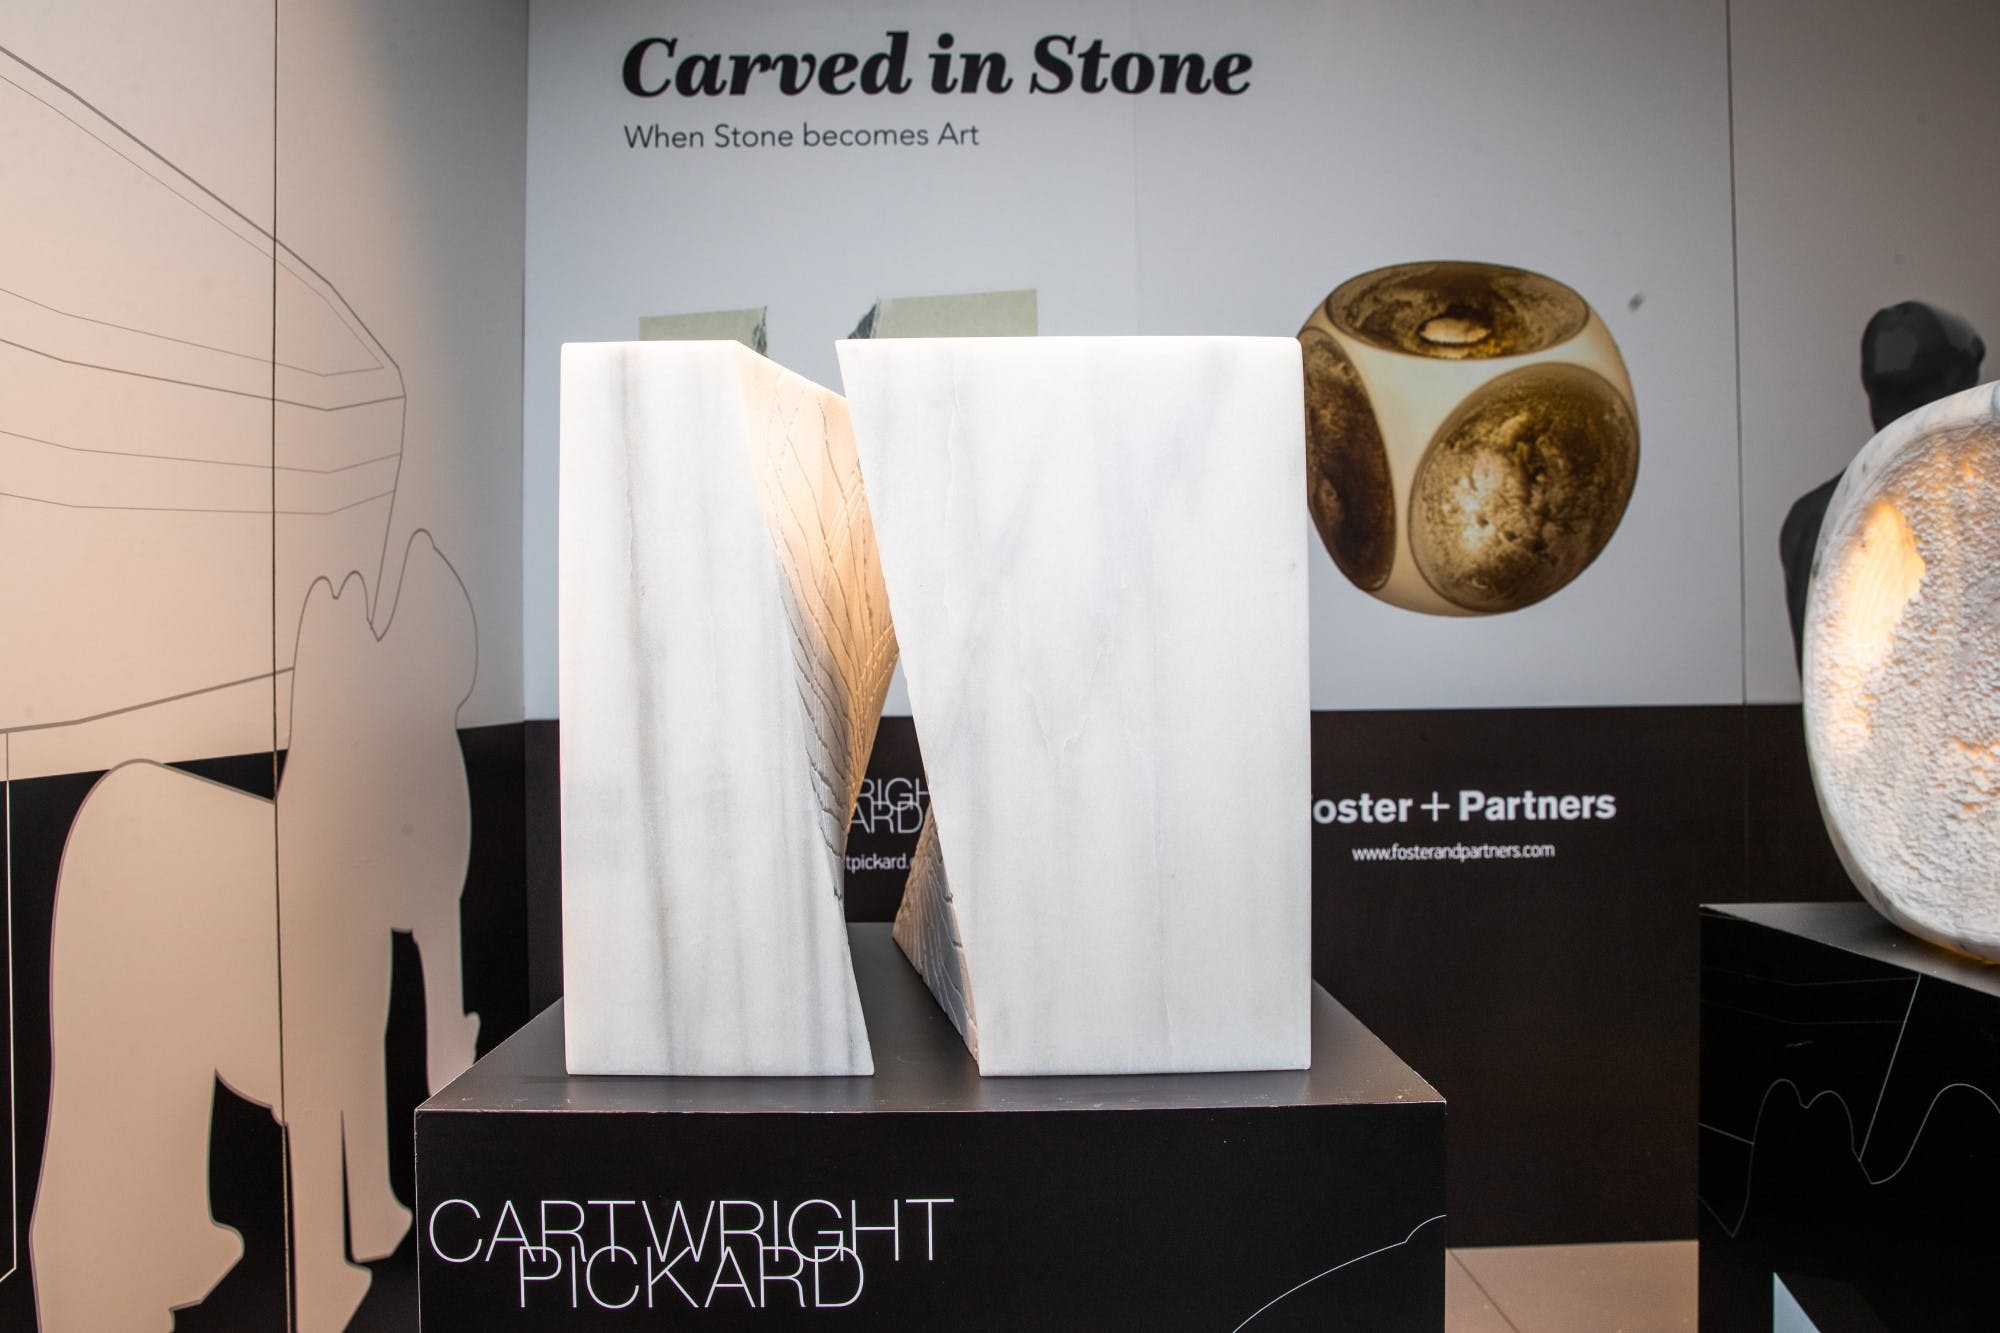 Image of Cartwright Pickard Sculpture 4 in Cosentino Announces the Winners of its Carved in Stone Competition - Cosentino